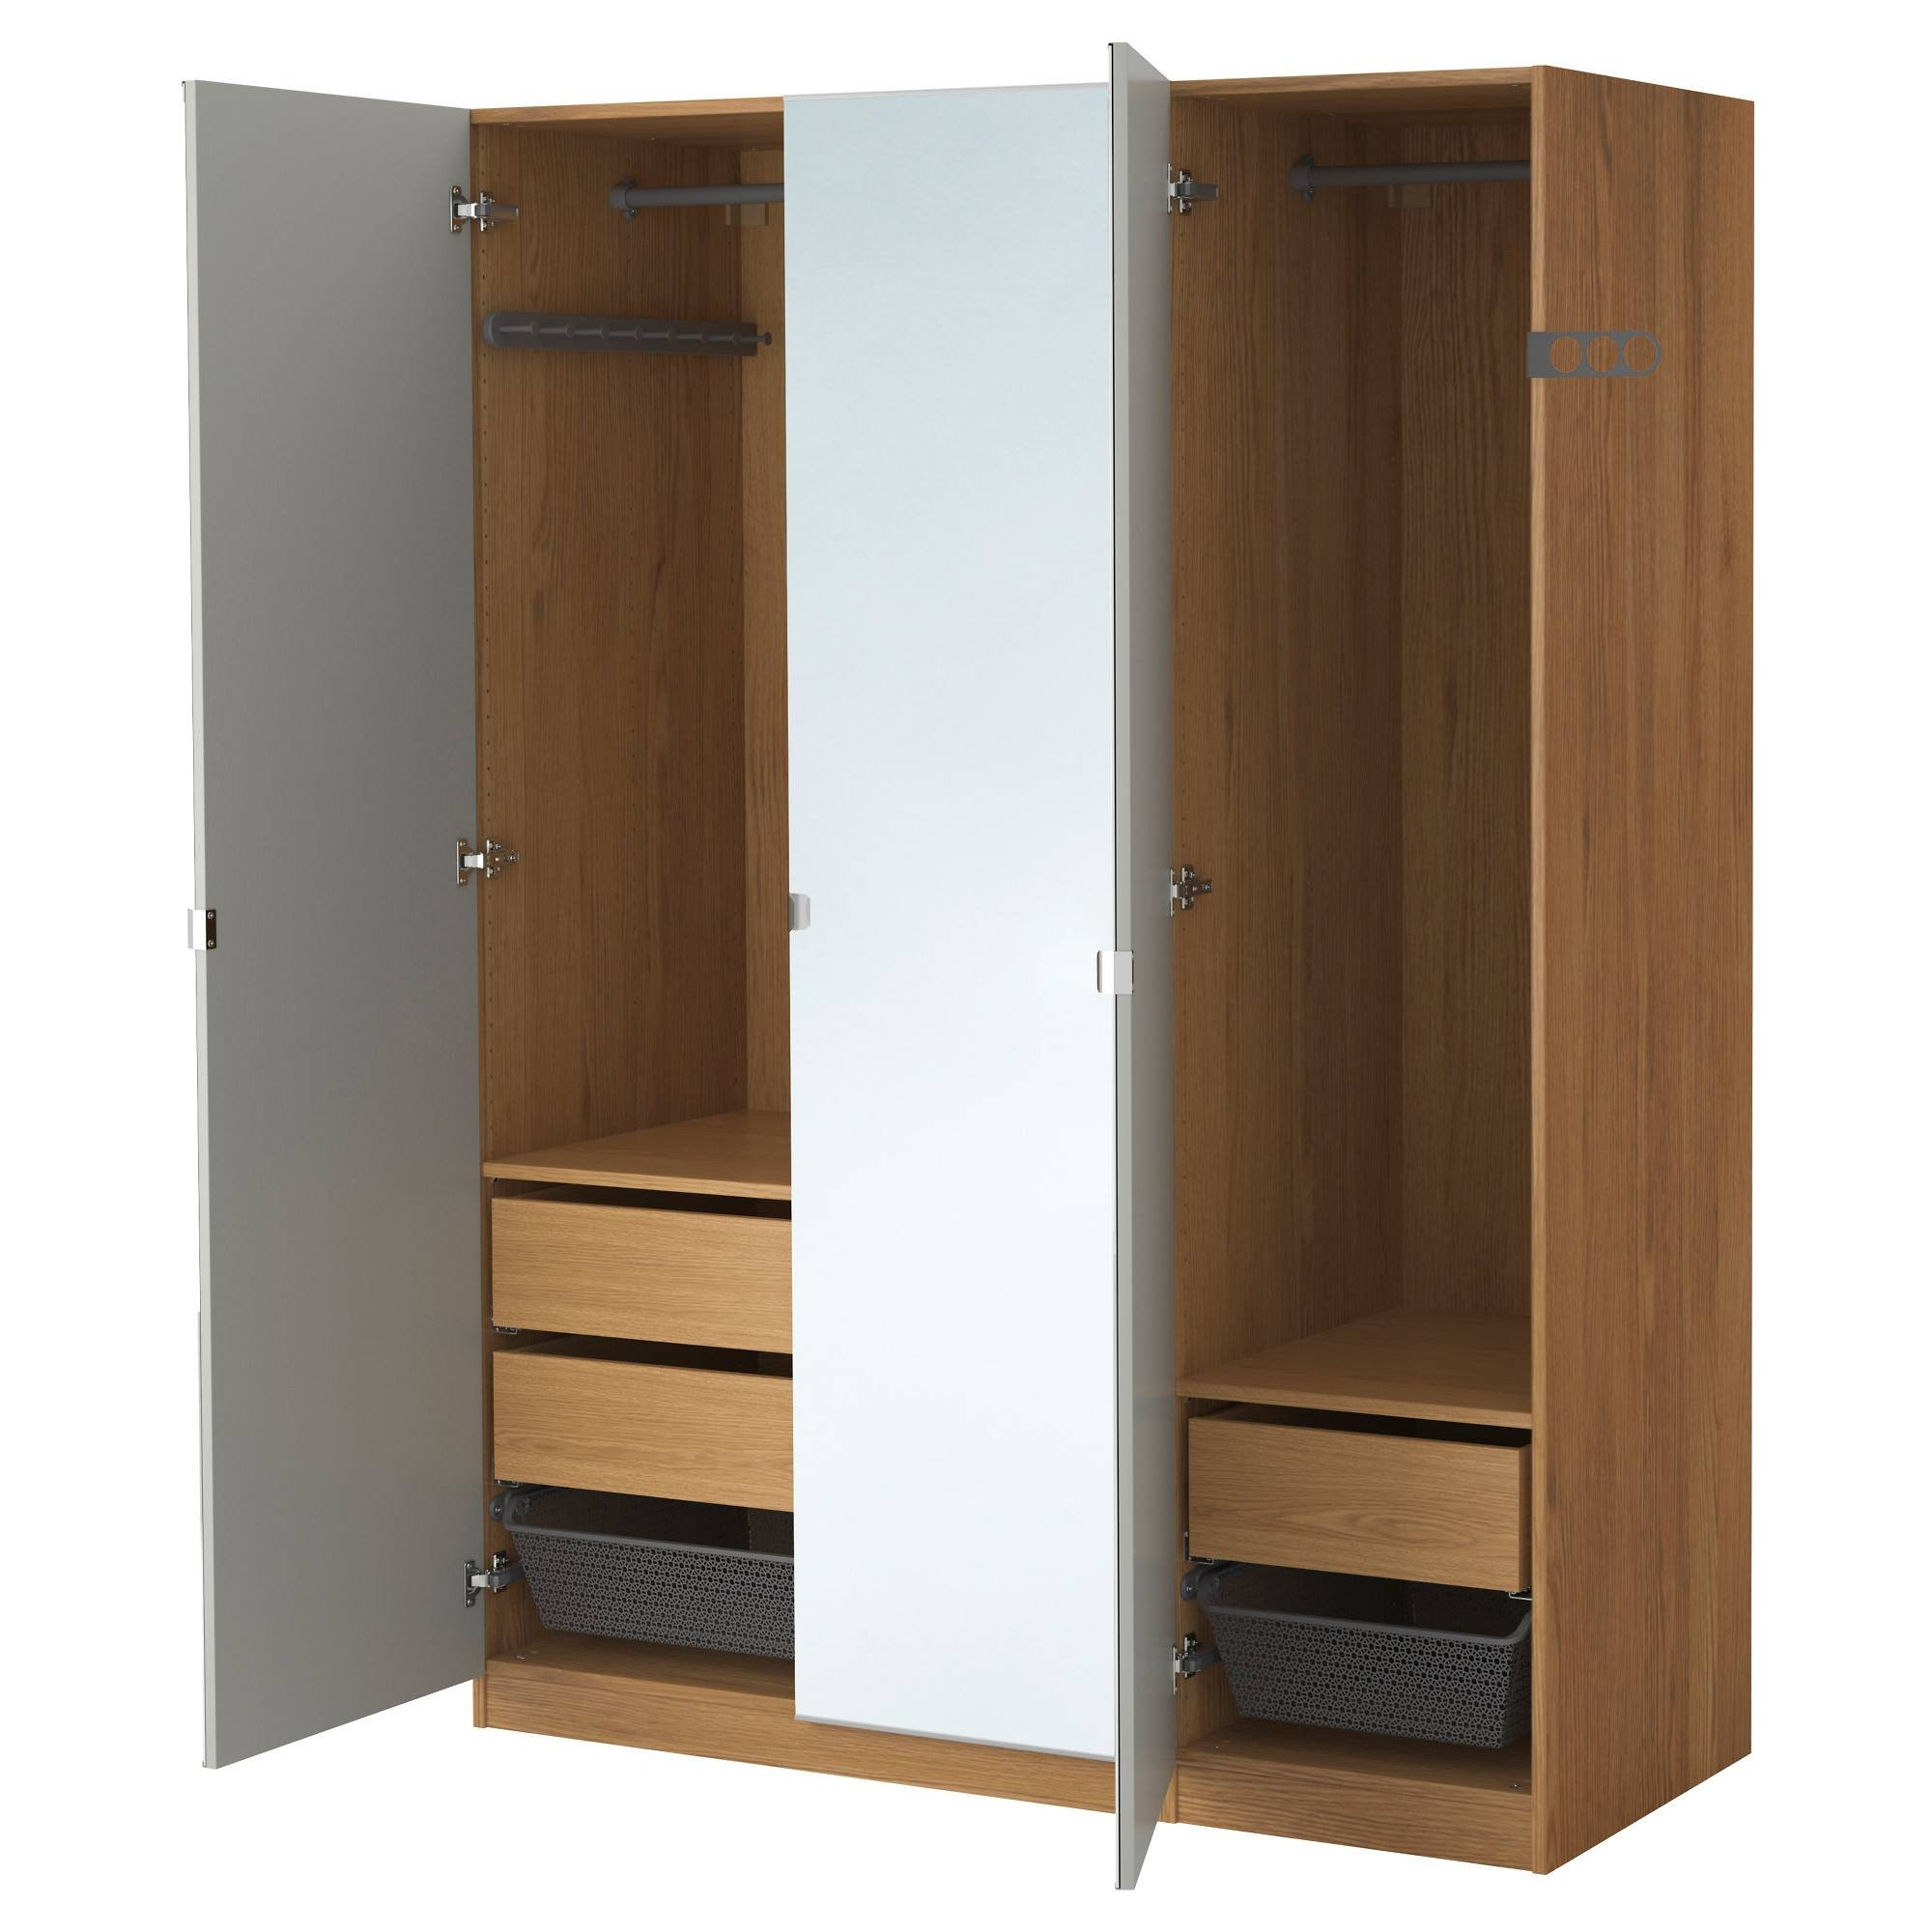 Wardrobes | Ikea for Triple Mirrored Wardrobes (Image 12 of 15)